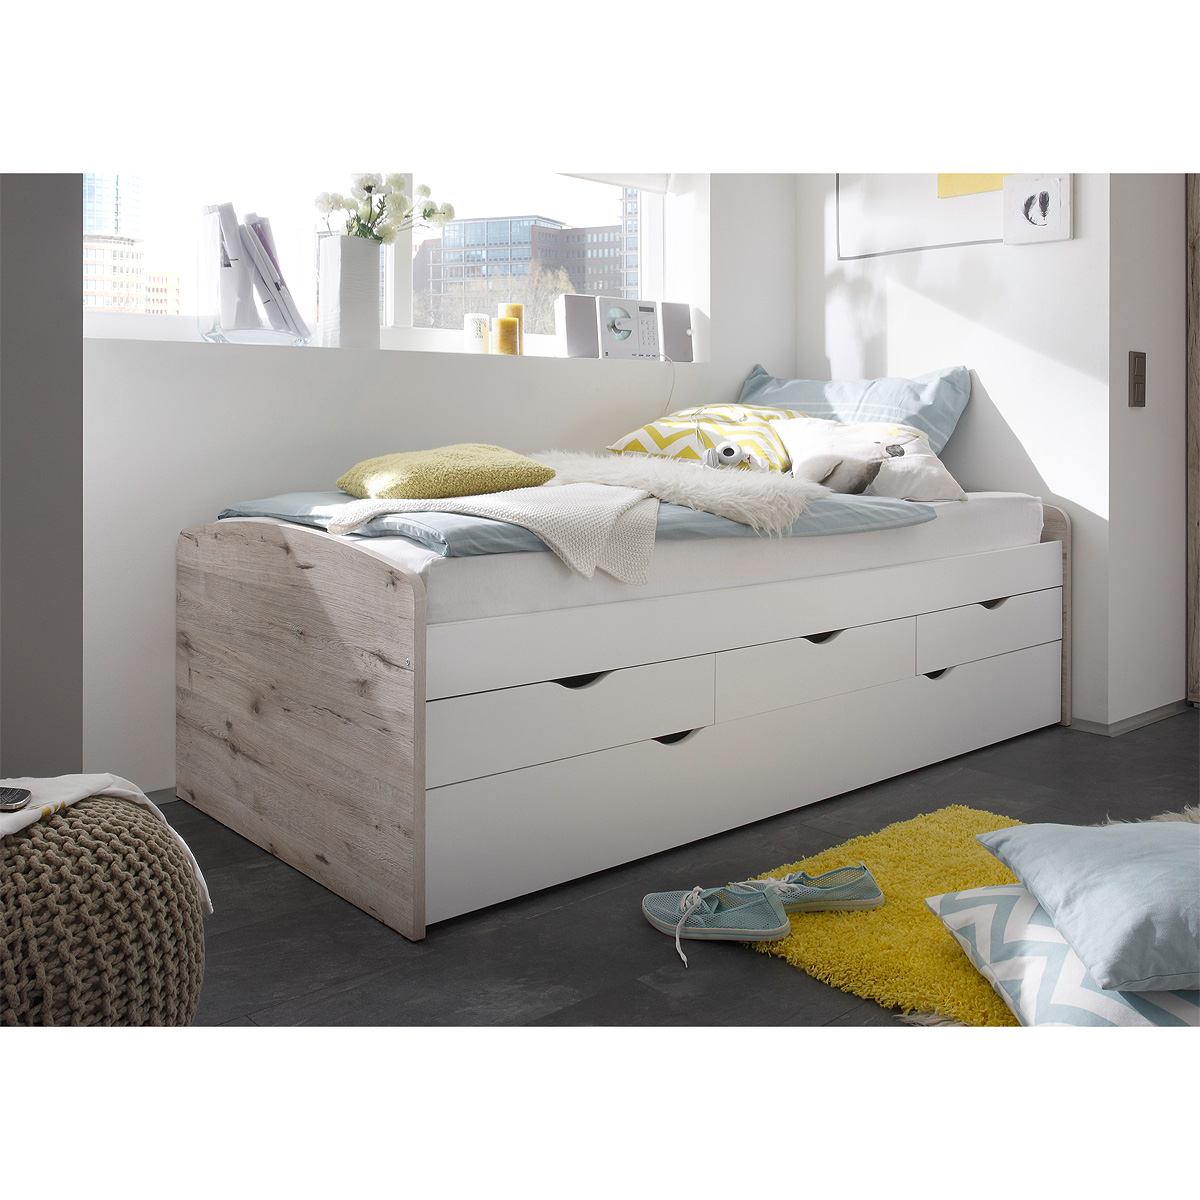 bett kinderbett hochbett wei sandeiche 2 liegefl chen 90x200 ebay. Black Bedroom Furniture Sets. Home Design Ideas